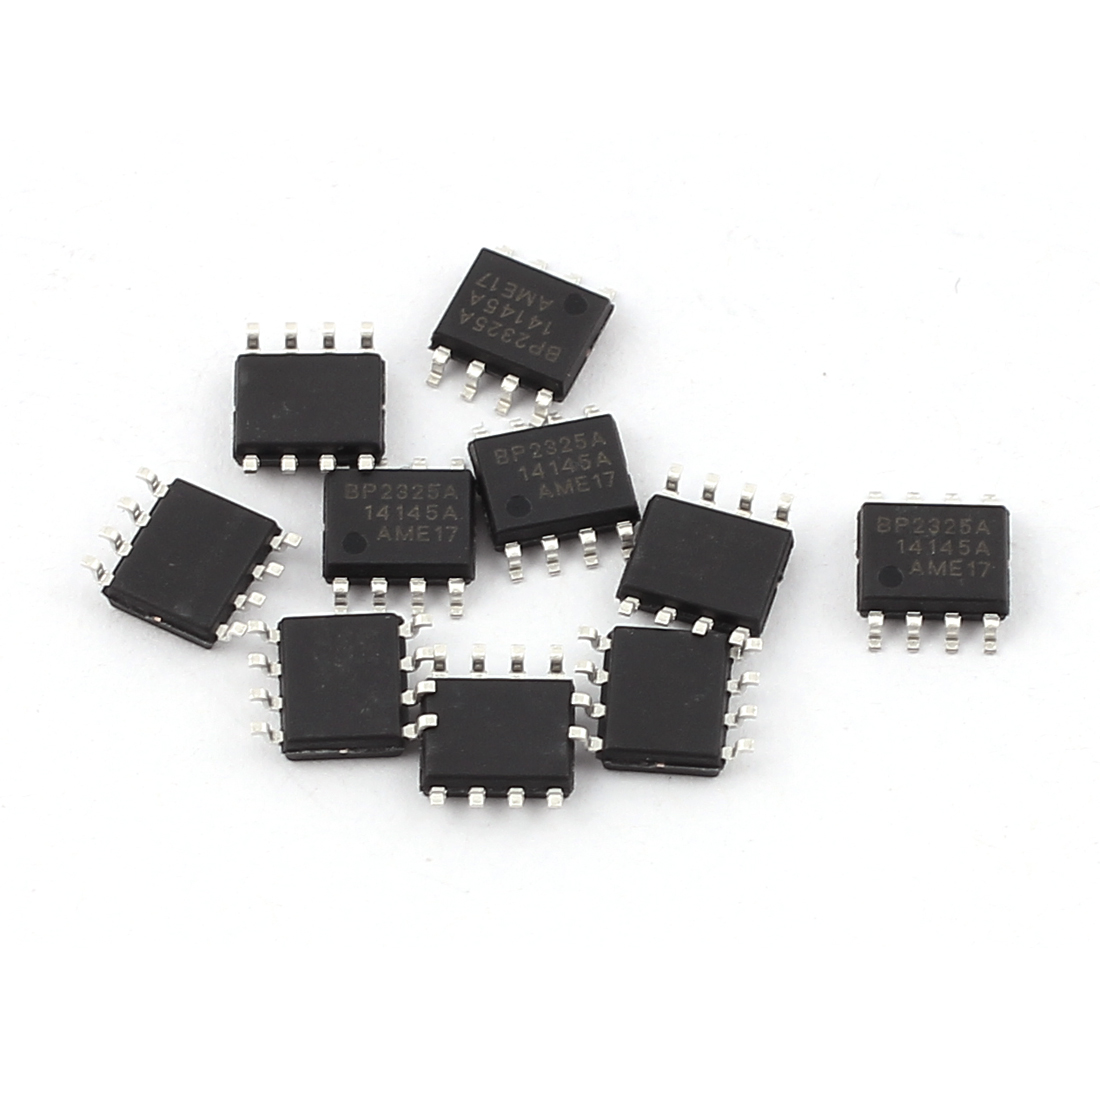 10Pcs BP2325 SOP-8 SMD SMT Type PCB Surface Mount LED Driver Circuit Module Integrated Circuit IC Chip